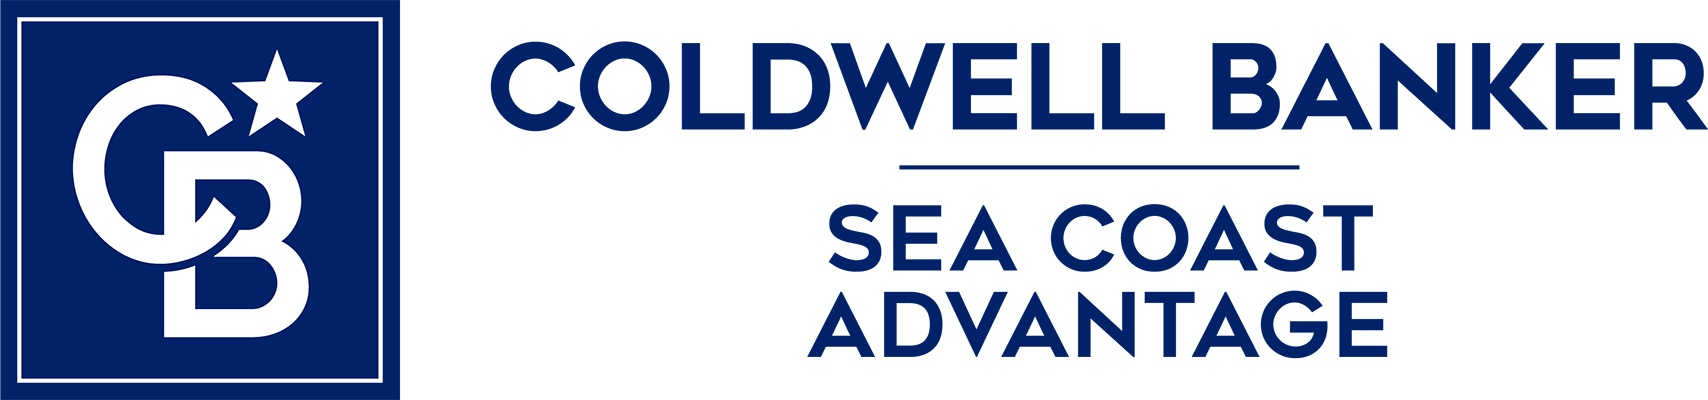 Rachel Belch - Coldwell Banker Sea Coast Advantage Realty